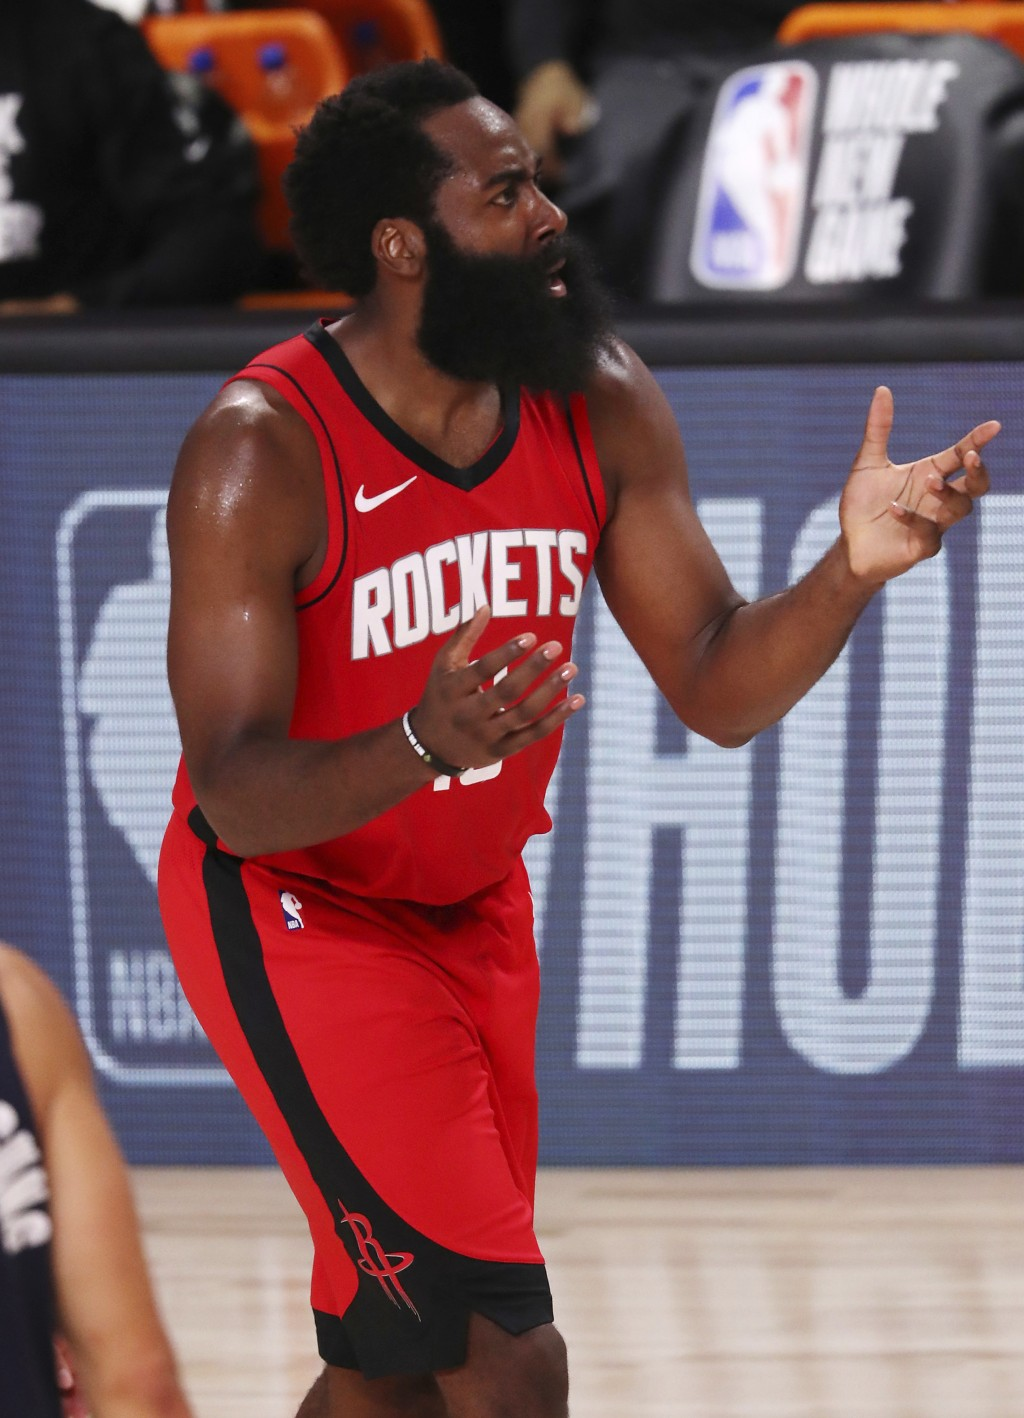 Houston Rockets' James Harden reacts during the second half of an NBA basketball game against the Dallas Mavericks, Friday, July 31, 2020, in Lake Bue...